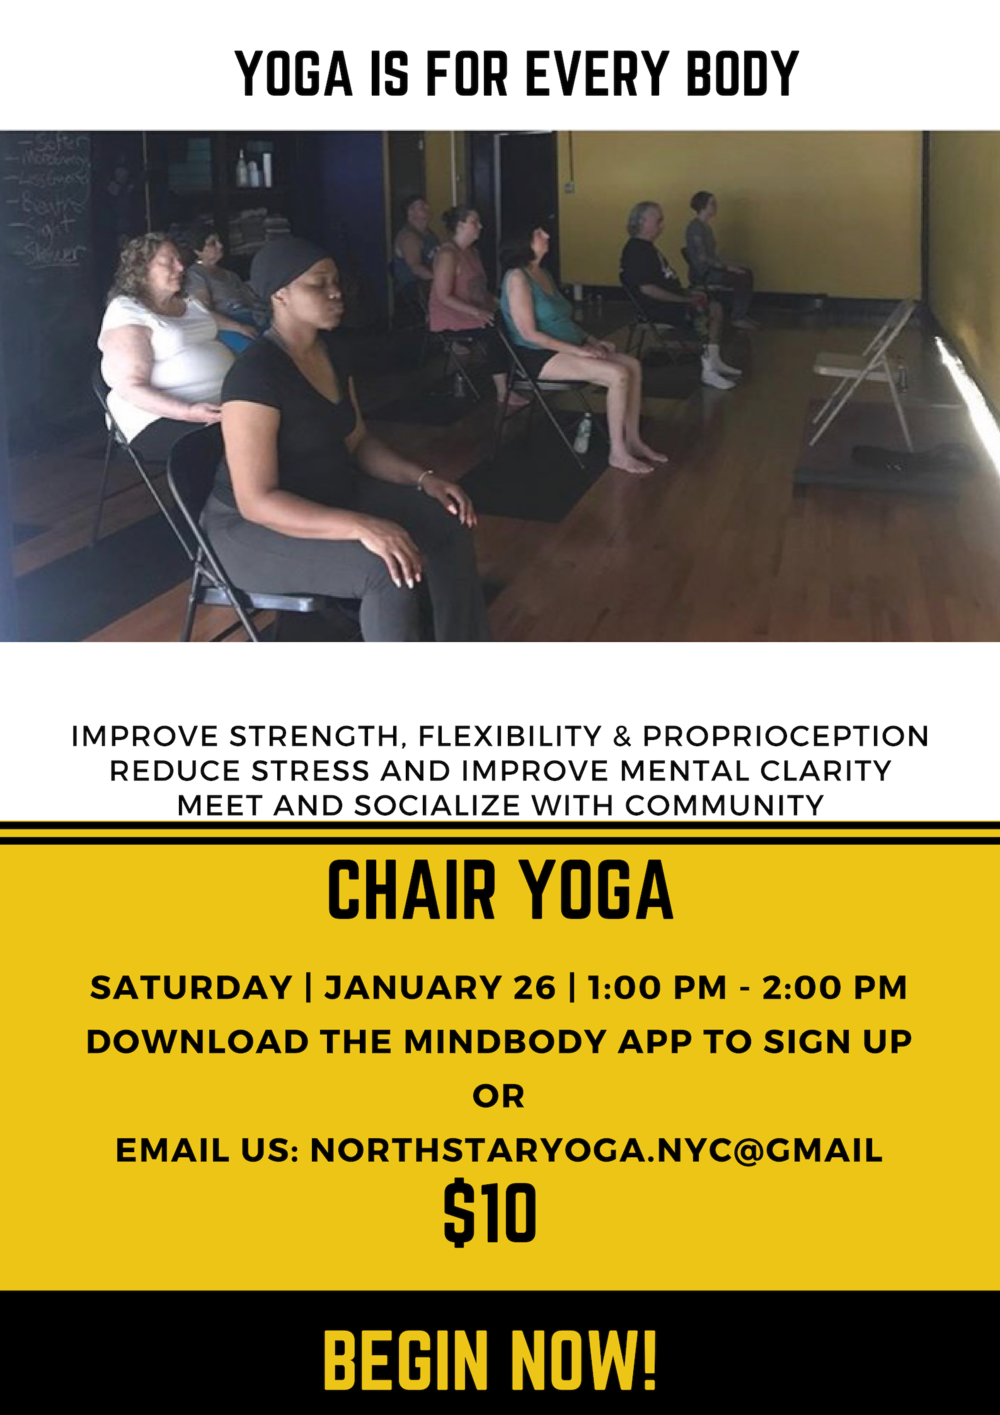 First chair yoga class will be Saturday January 26 at 1 PM